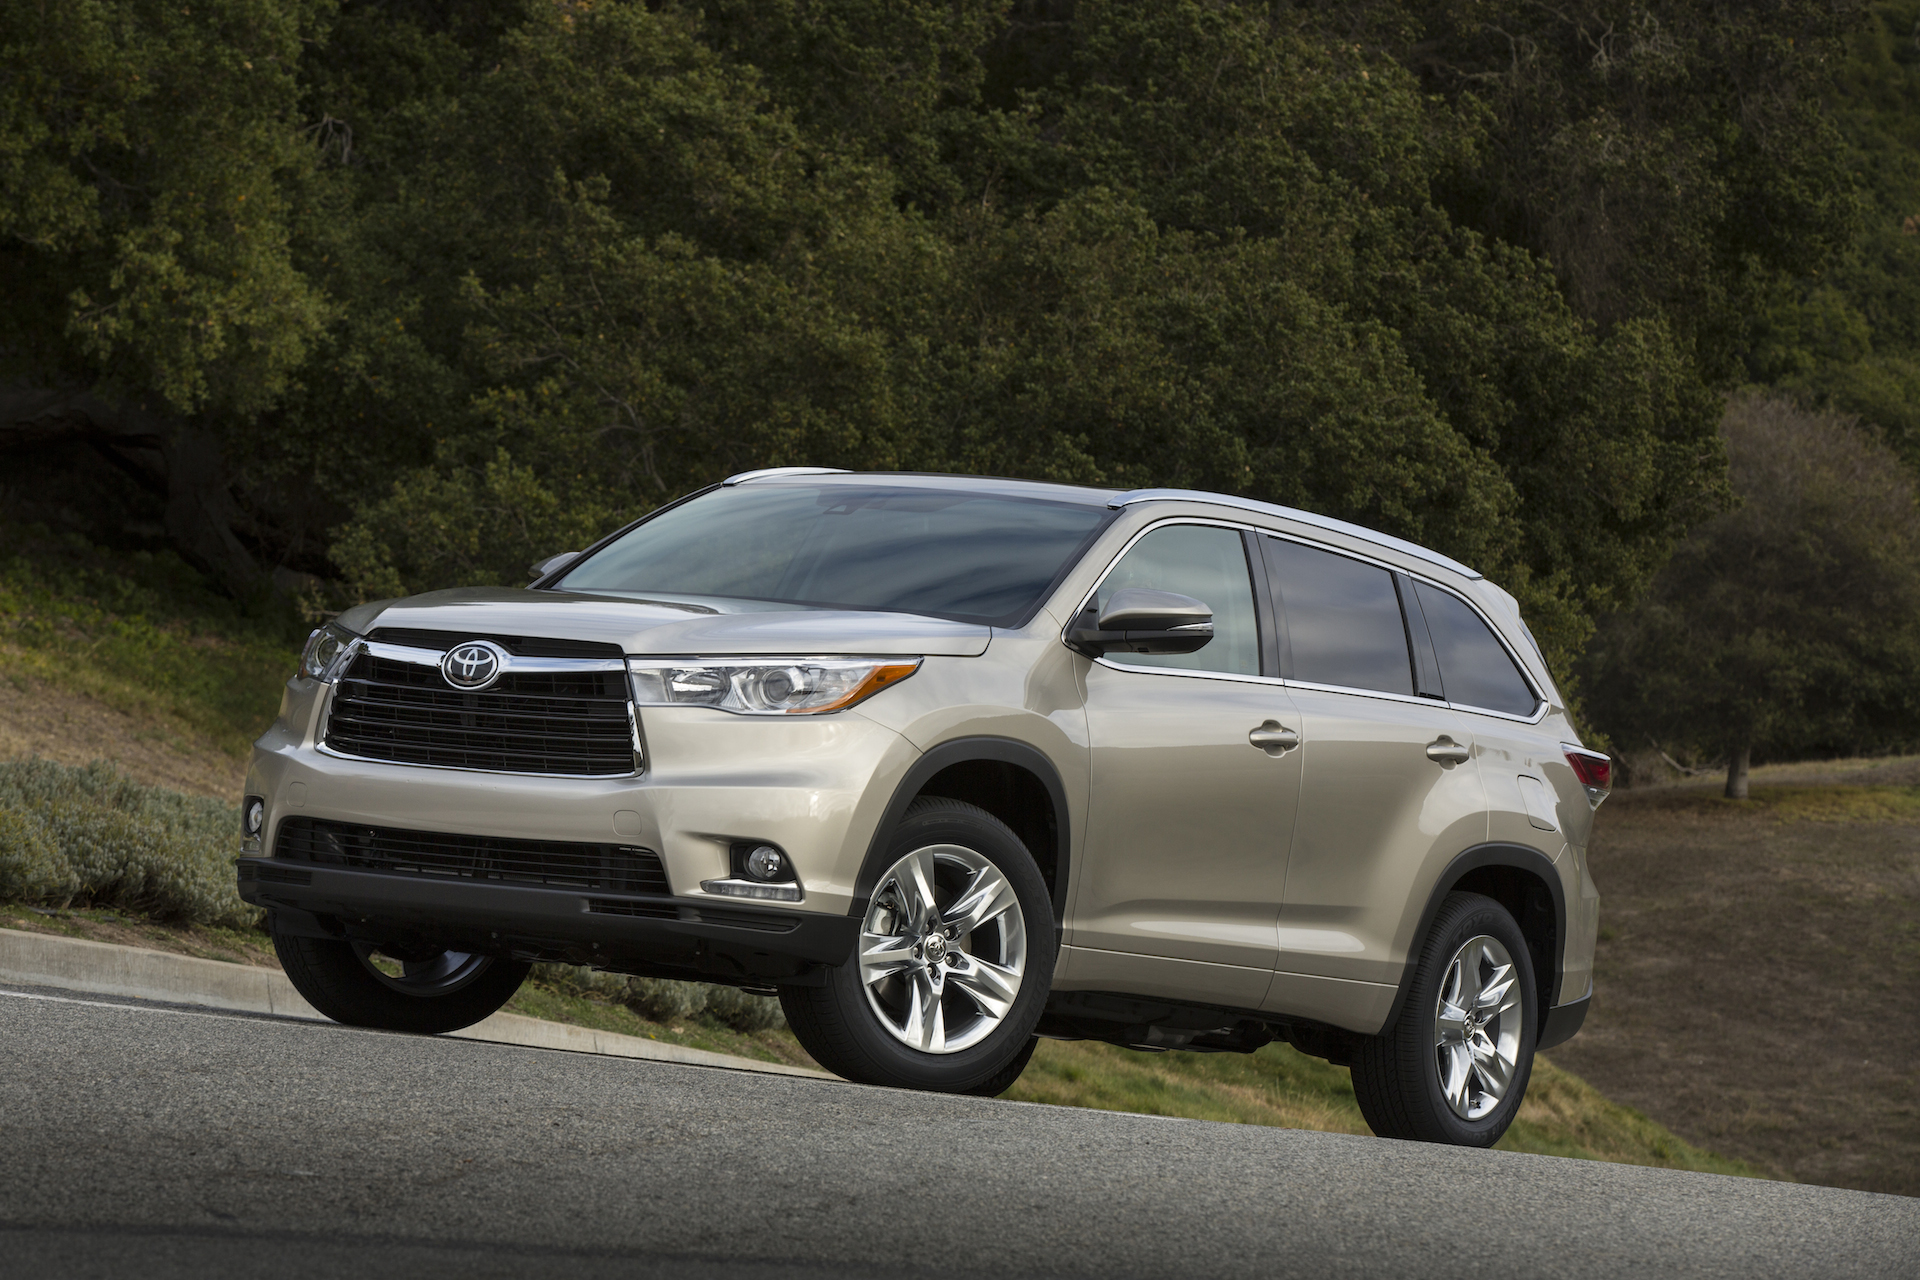 The Highlander Atlanta U003eu003e 2014 Toyota Highlander_100449362_h